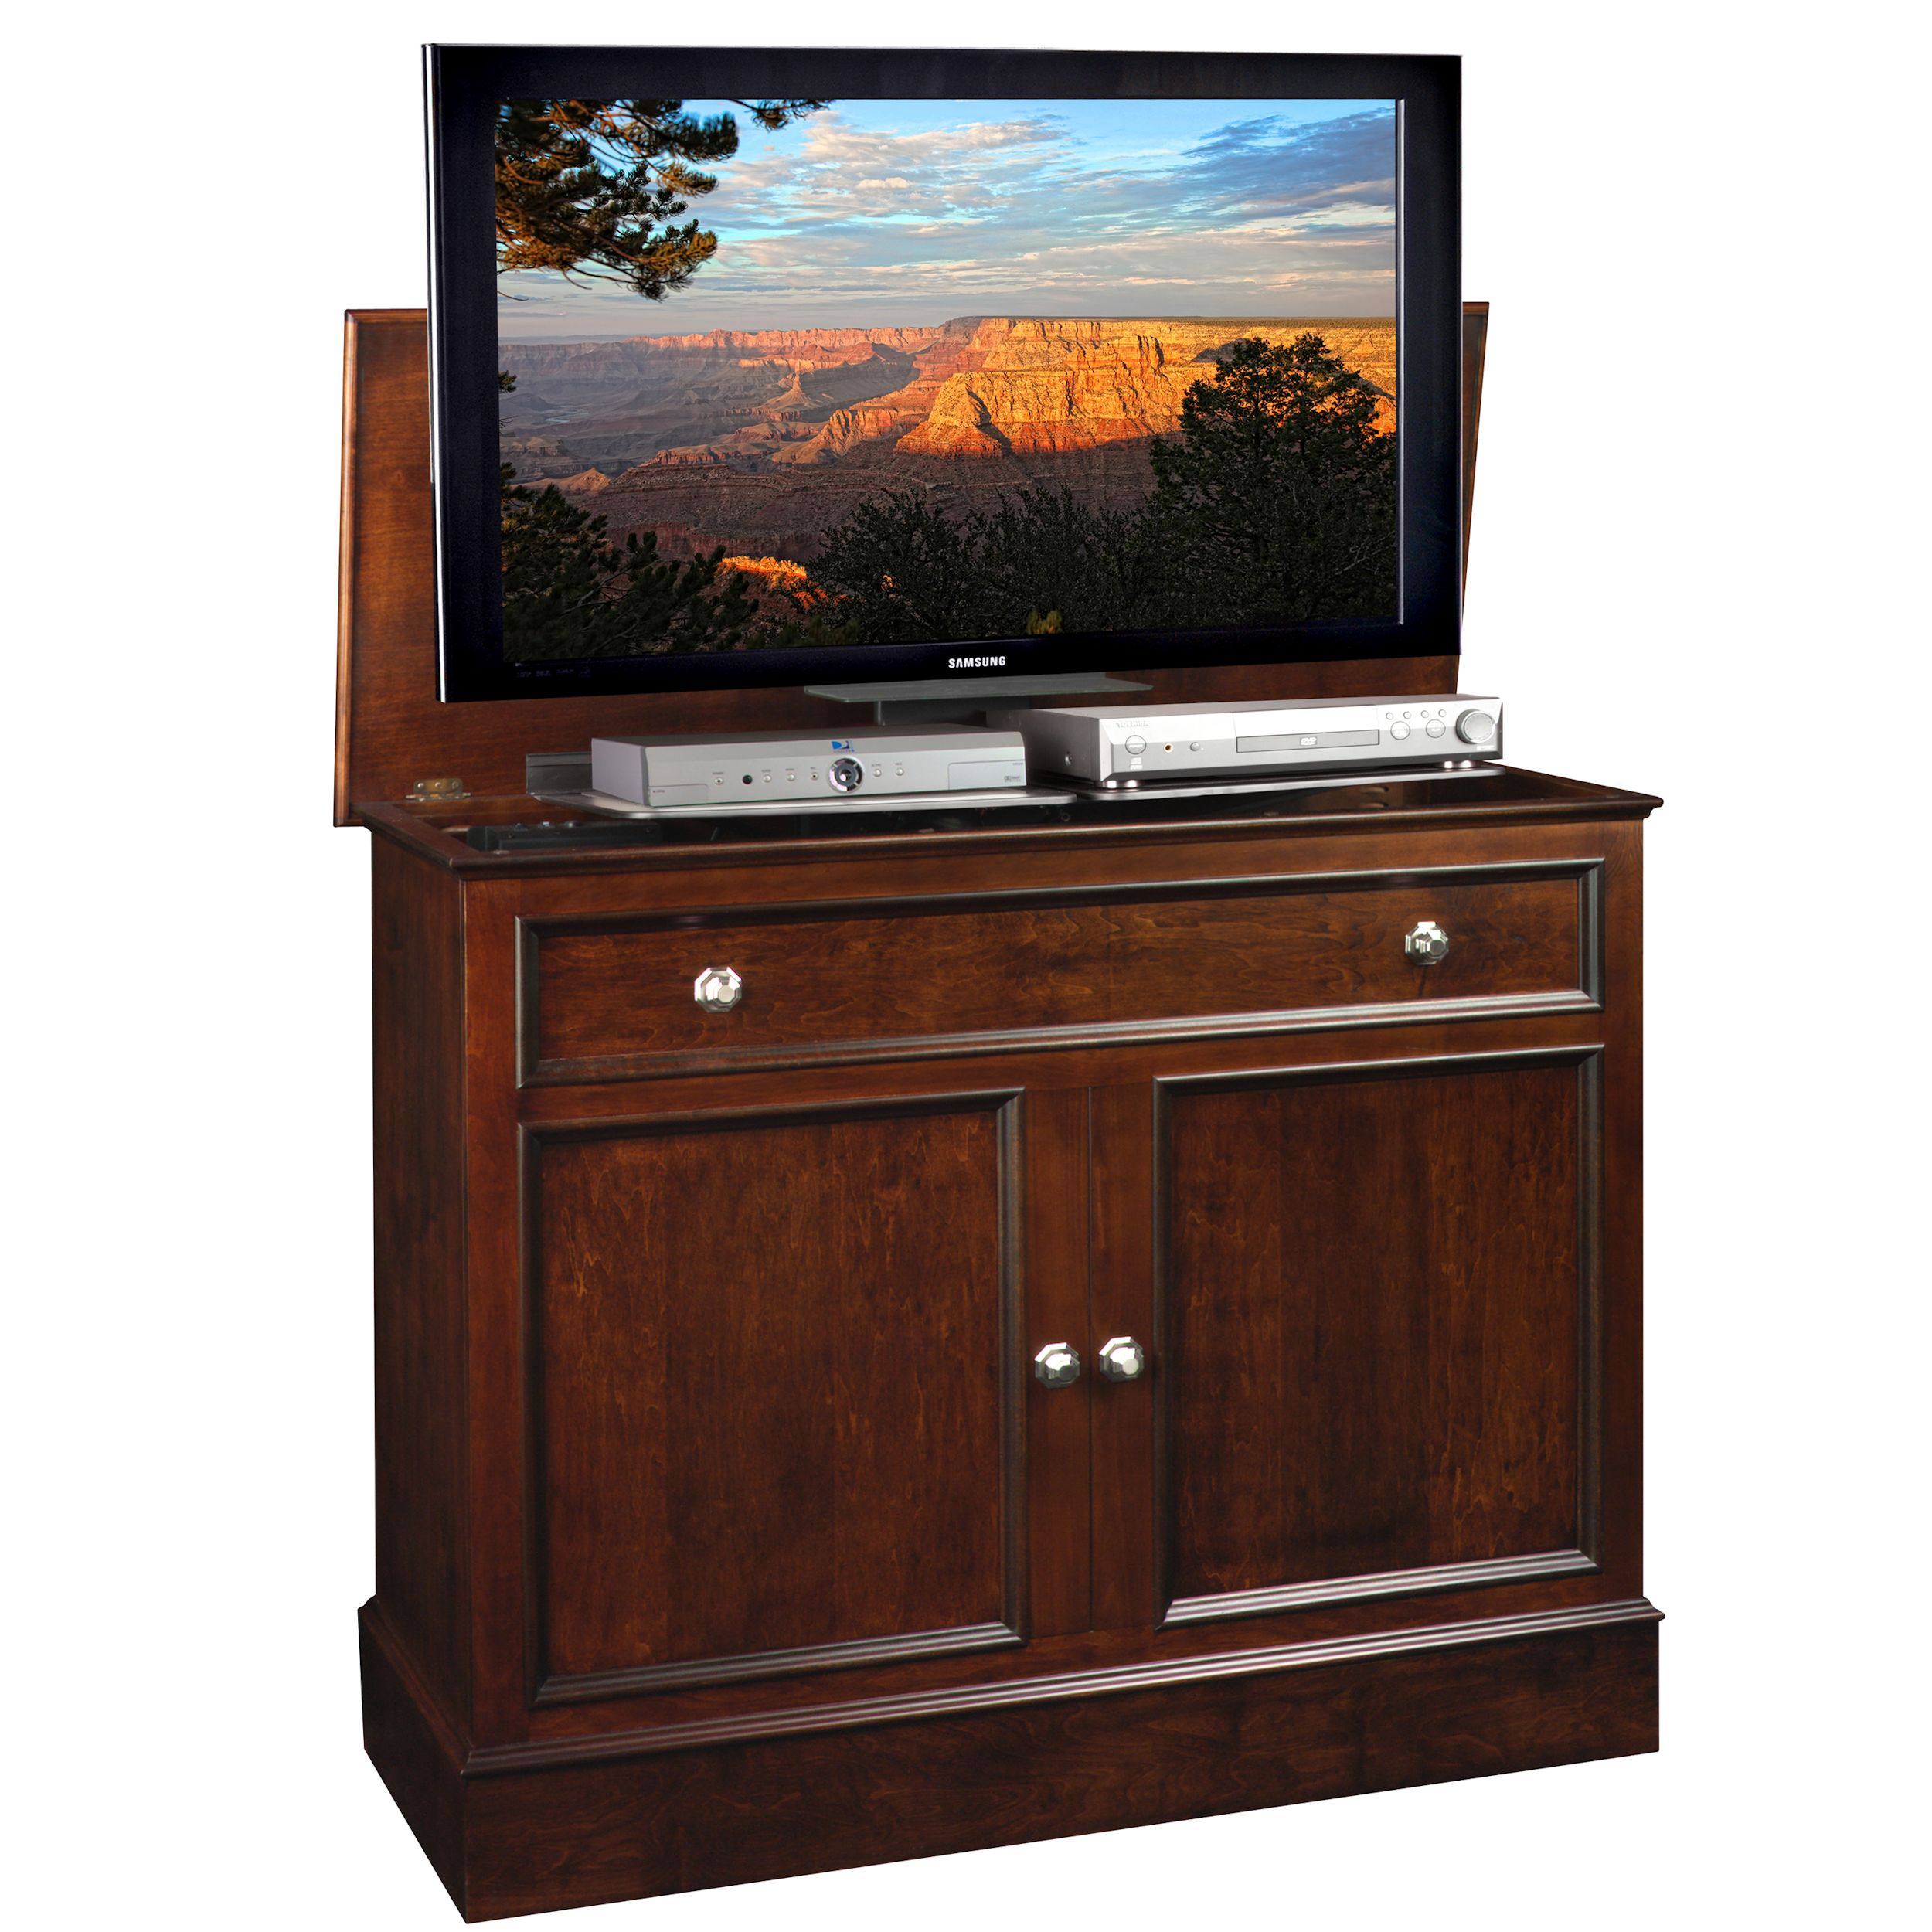 Tv Lift Cabinet Australia Traveler Tv Lift Cabinet